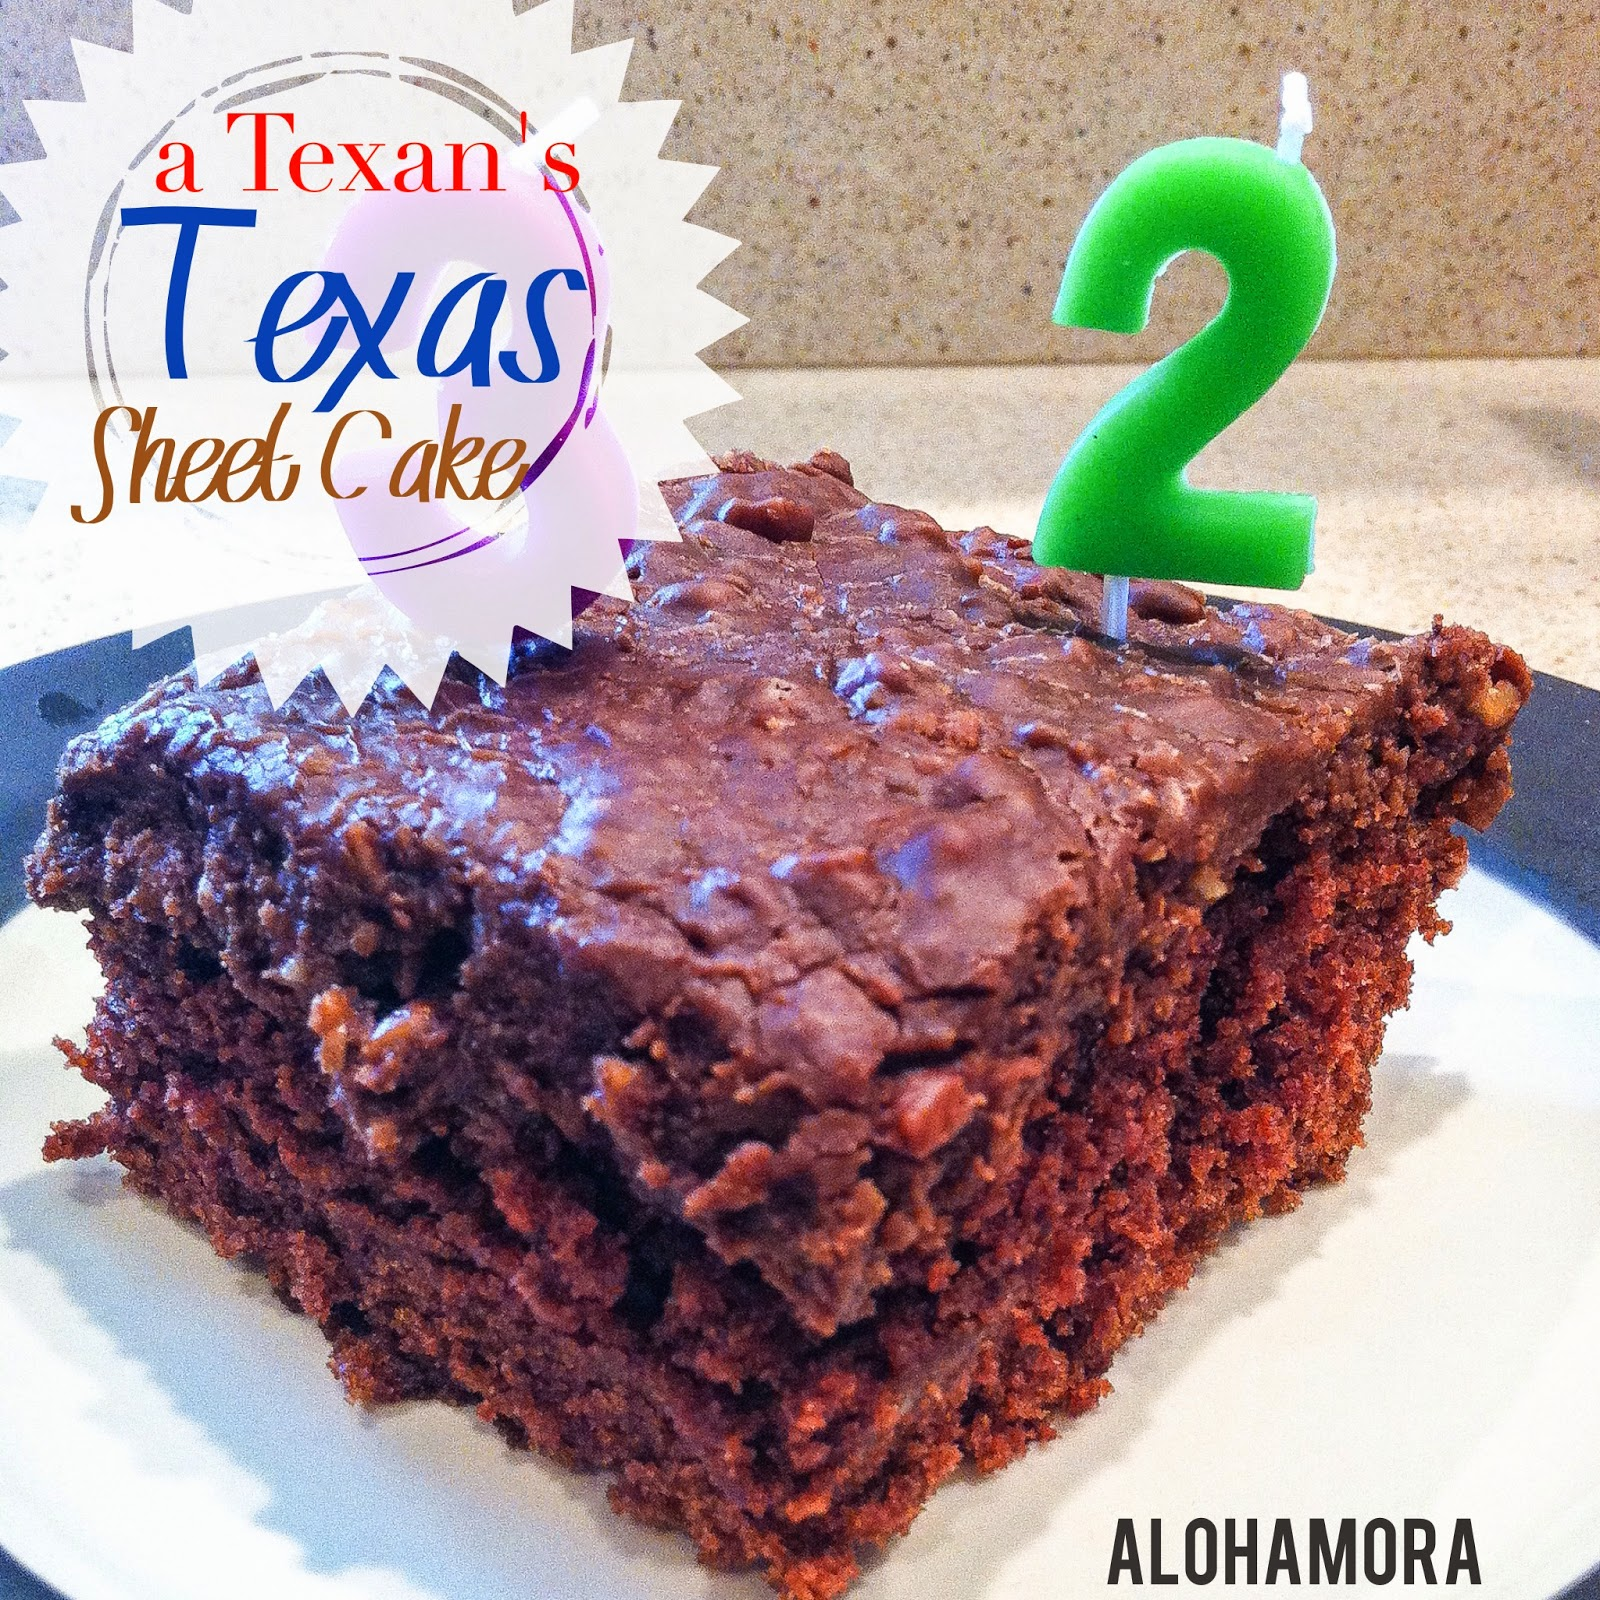 A Texan's thick and delicious chocolate Texas Sheet Cake.  Easy to make from scratch.  Moist cake with a frosting that seeps down into the cake.  So delicious!  Alohamora Open a Book http://alohamoraopenabook.blogspot.com/